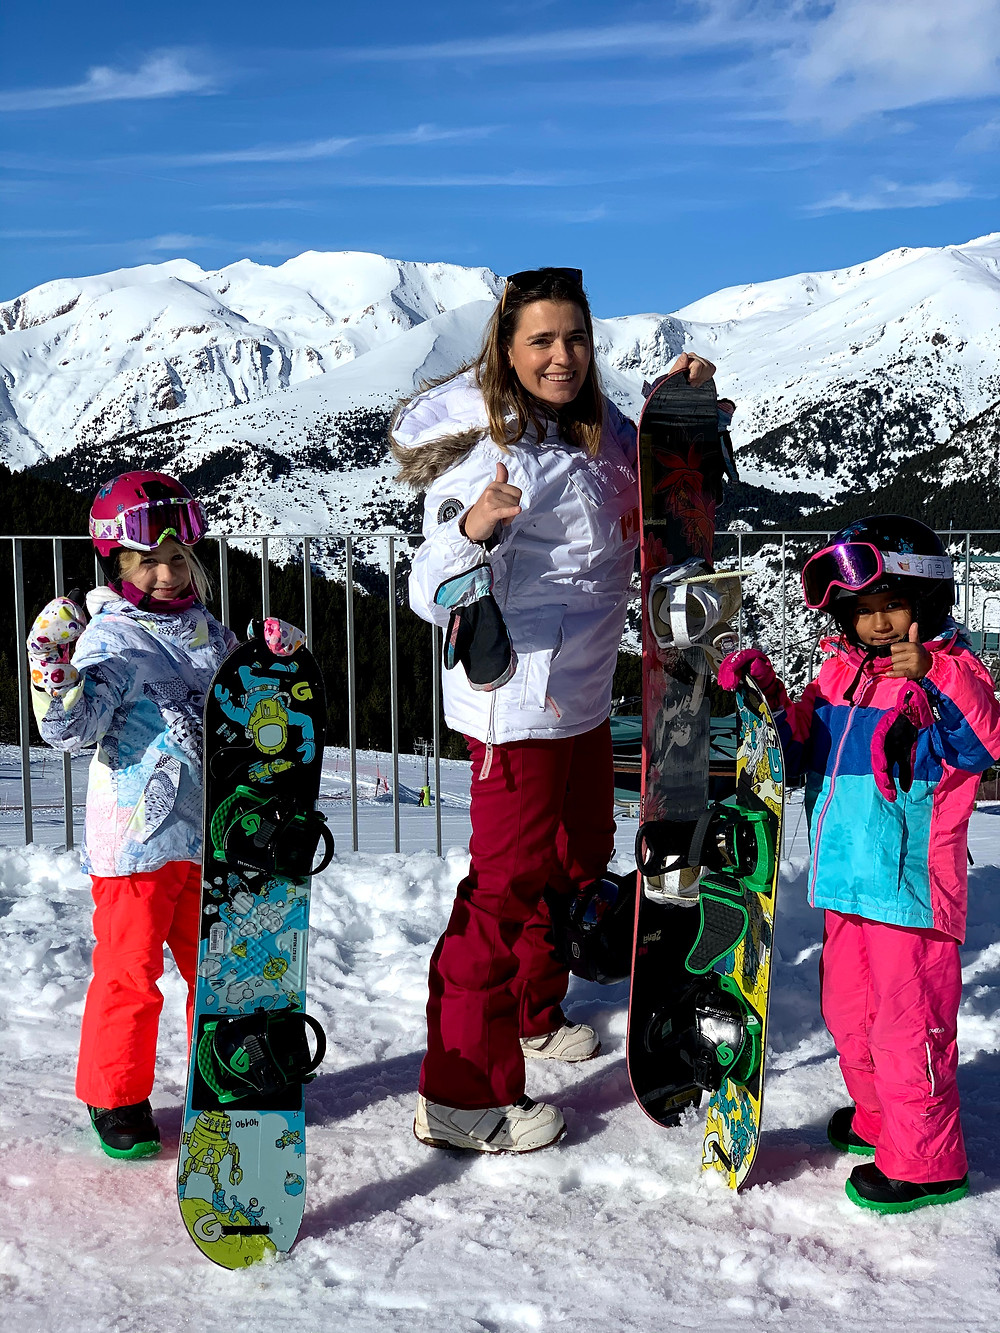 Hi, I am Zazi, a young snowboard gril. Here I am all geared up for my second day of snowboarding, in El Tarter - Grandvalira, Andorra.